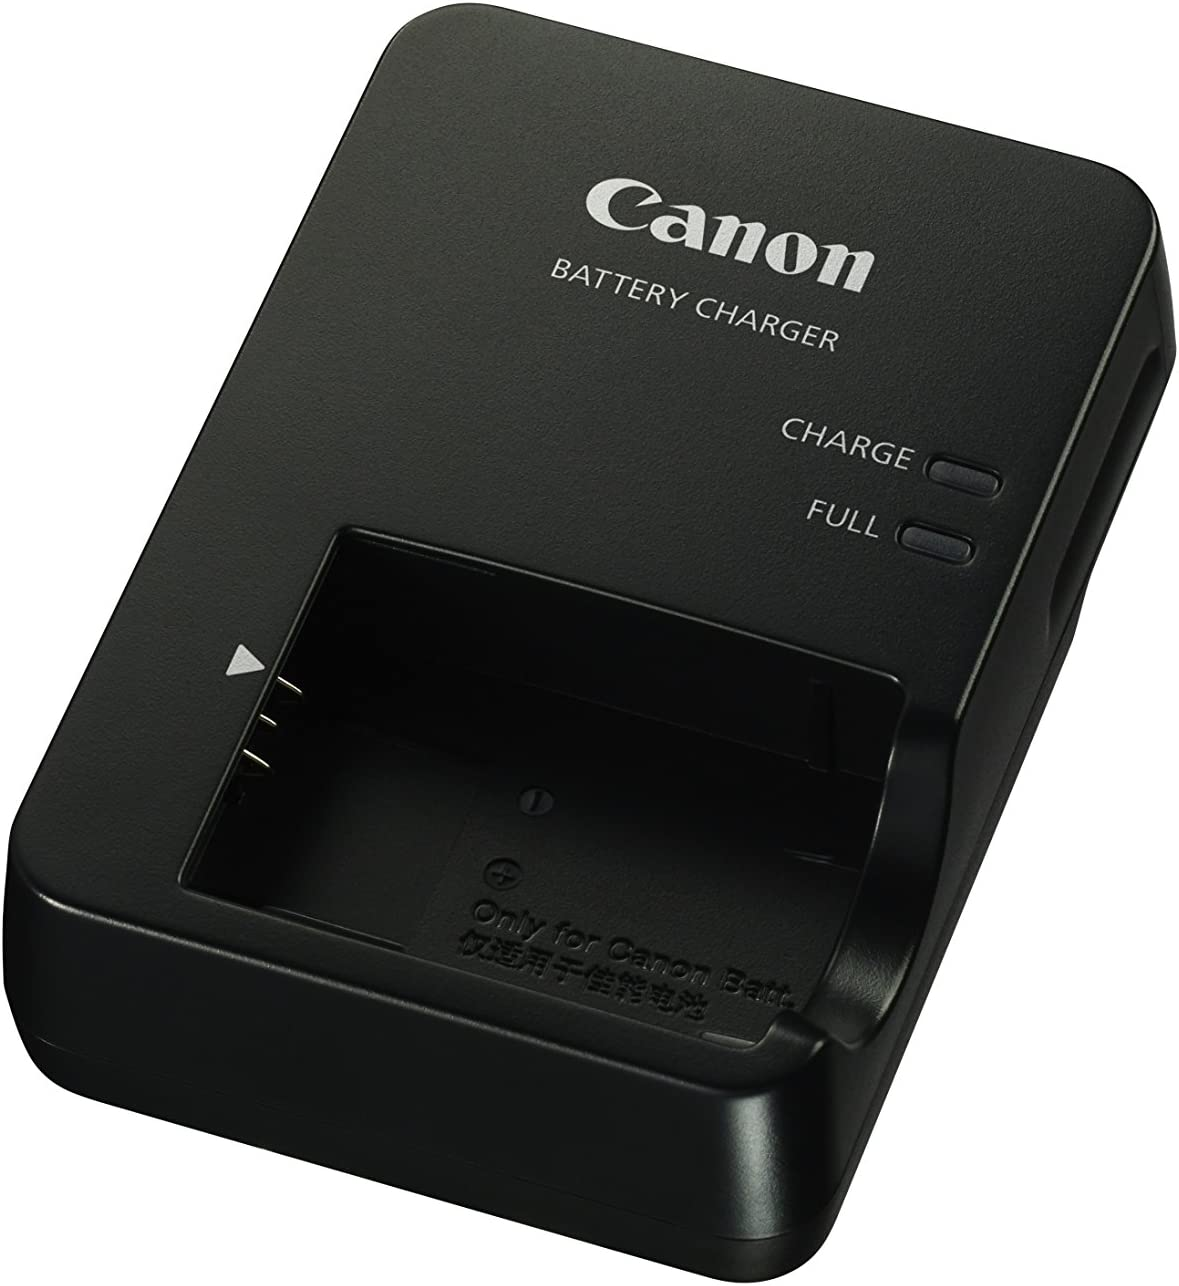 Canon Battery Charger CB-2LH : Camera & Photo